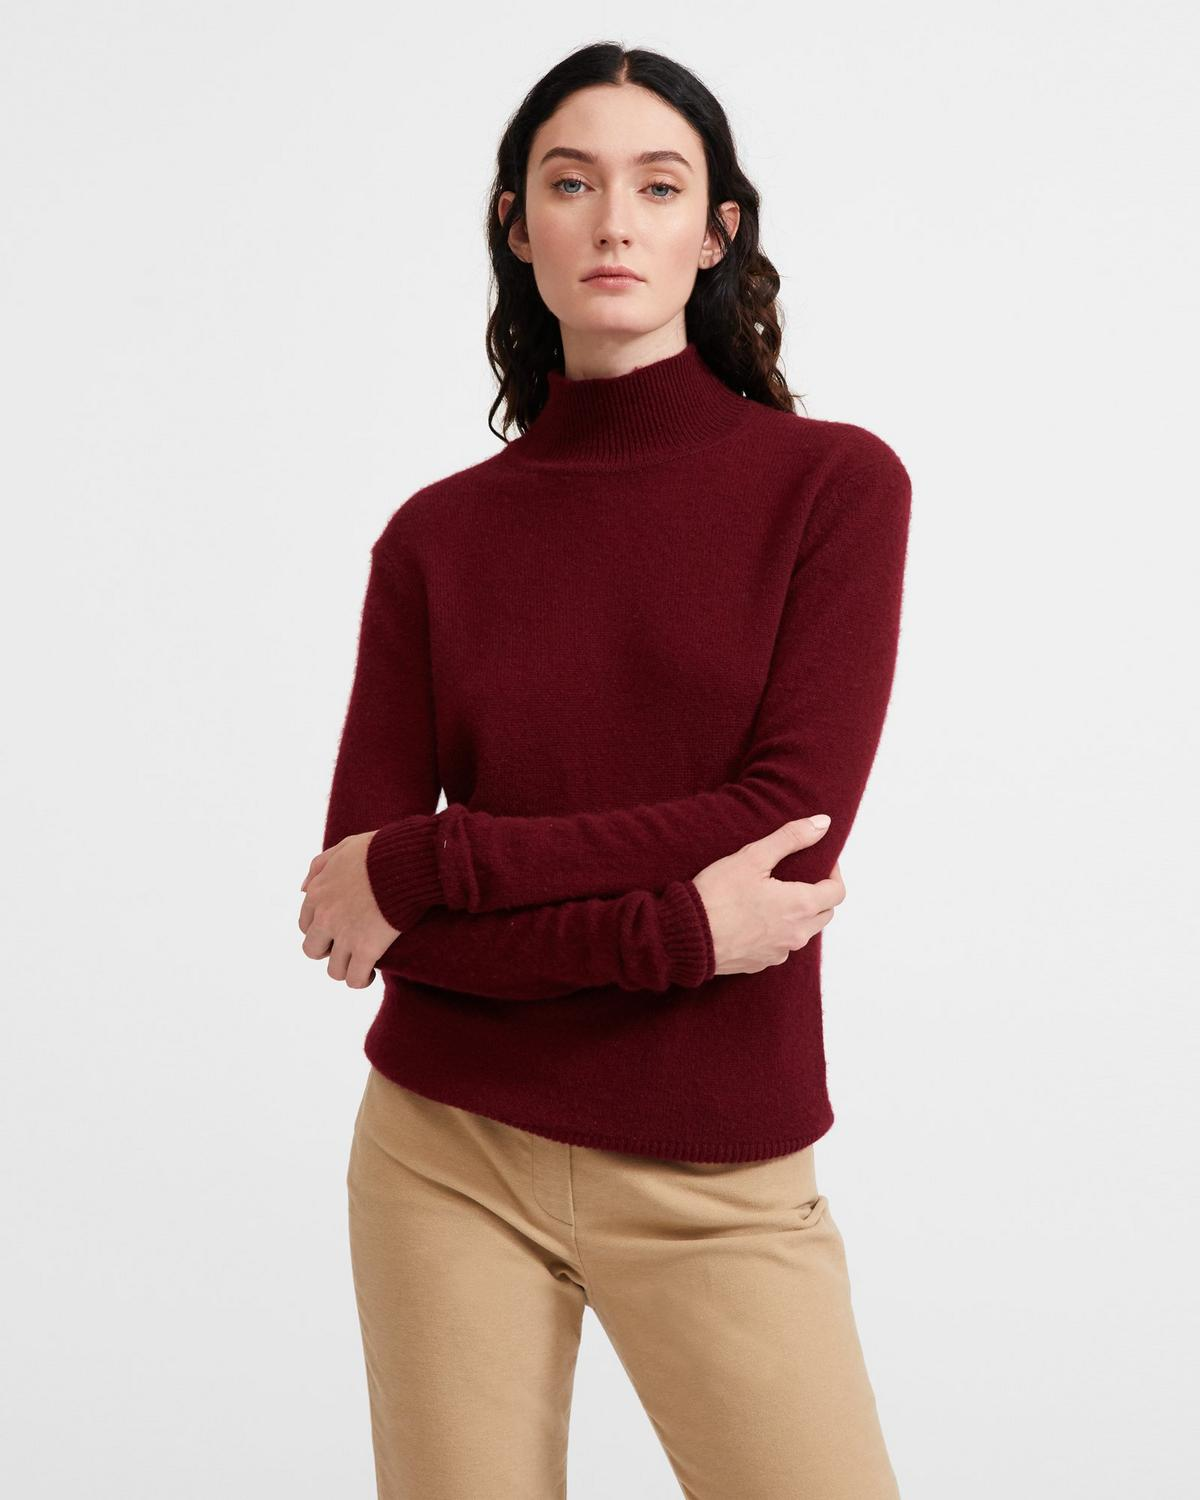 Feather Cashmere Basic Turtleneck Sweater